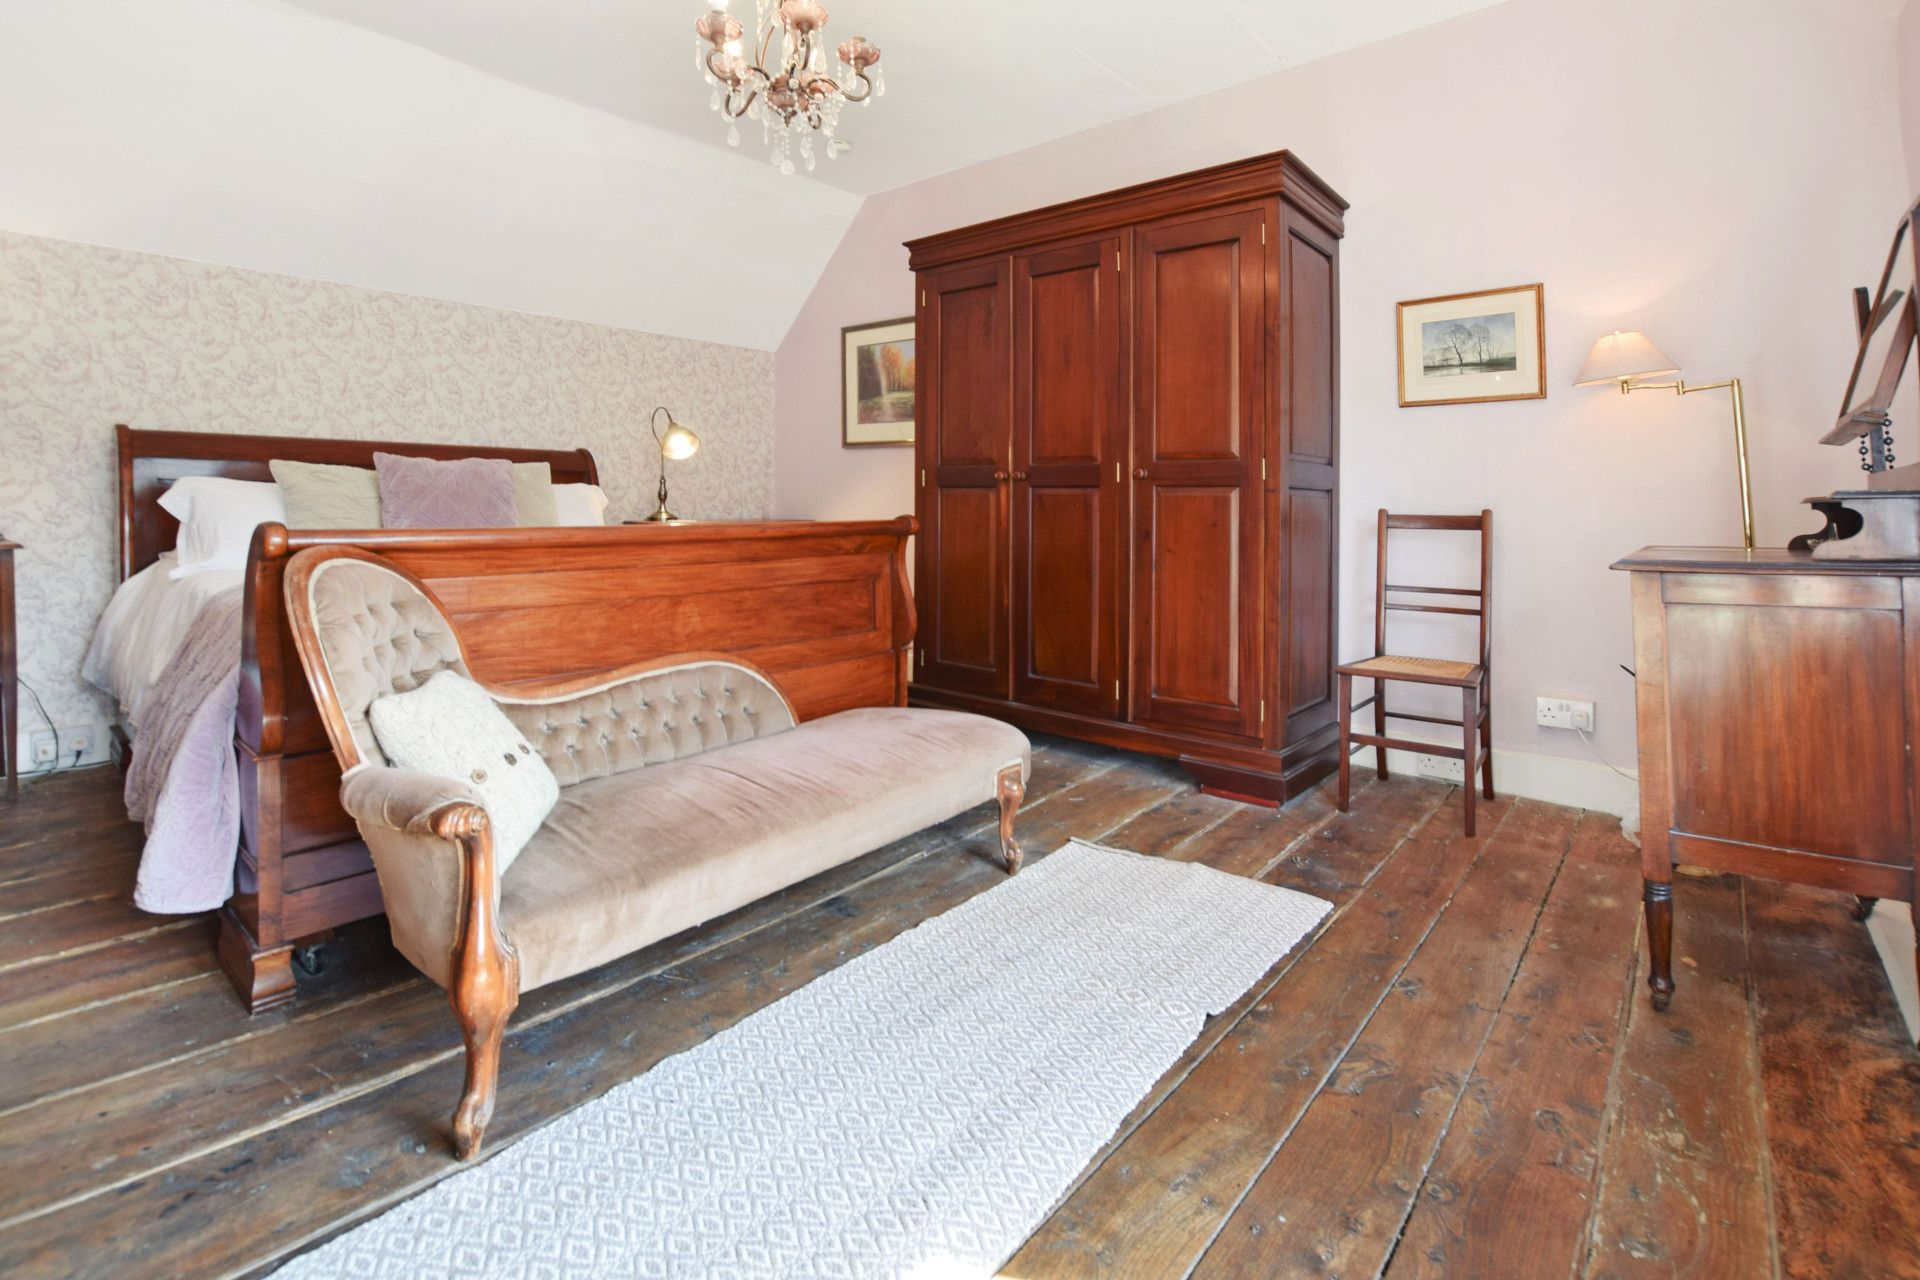 Bedroom One, Old Post Office, Bolthole Retreats